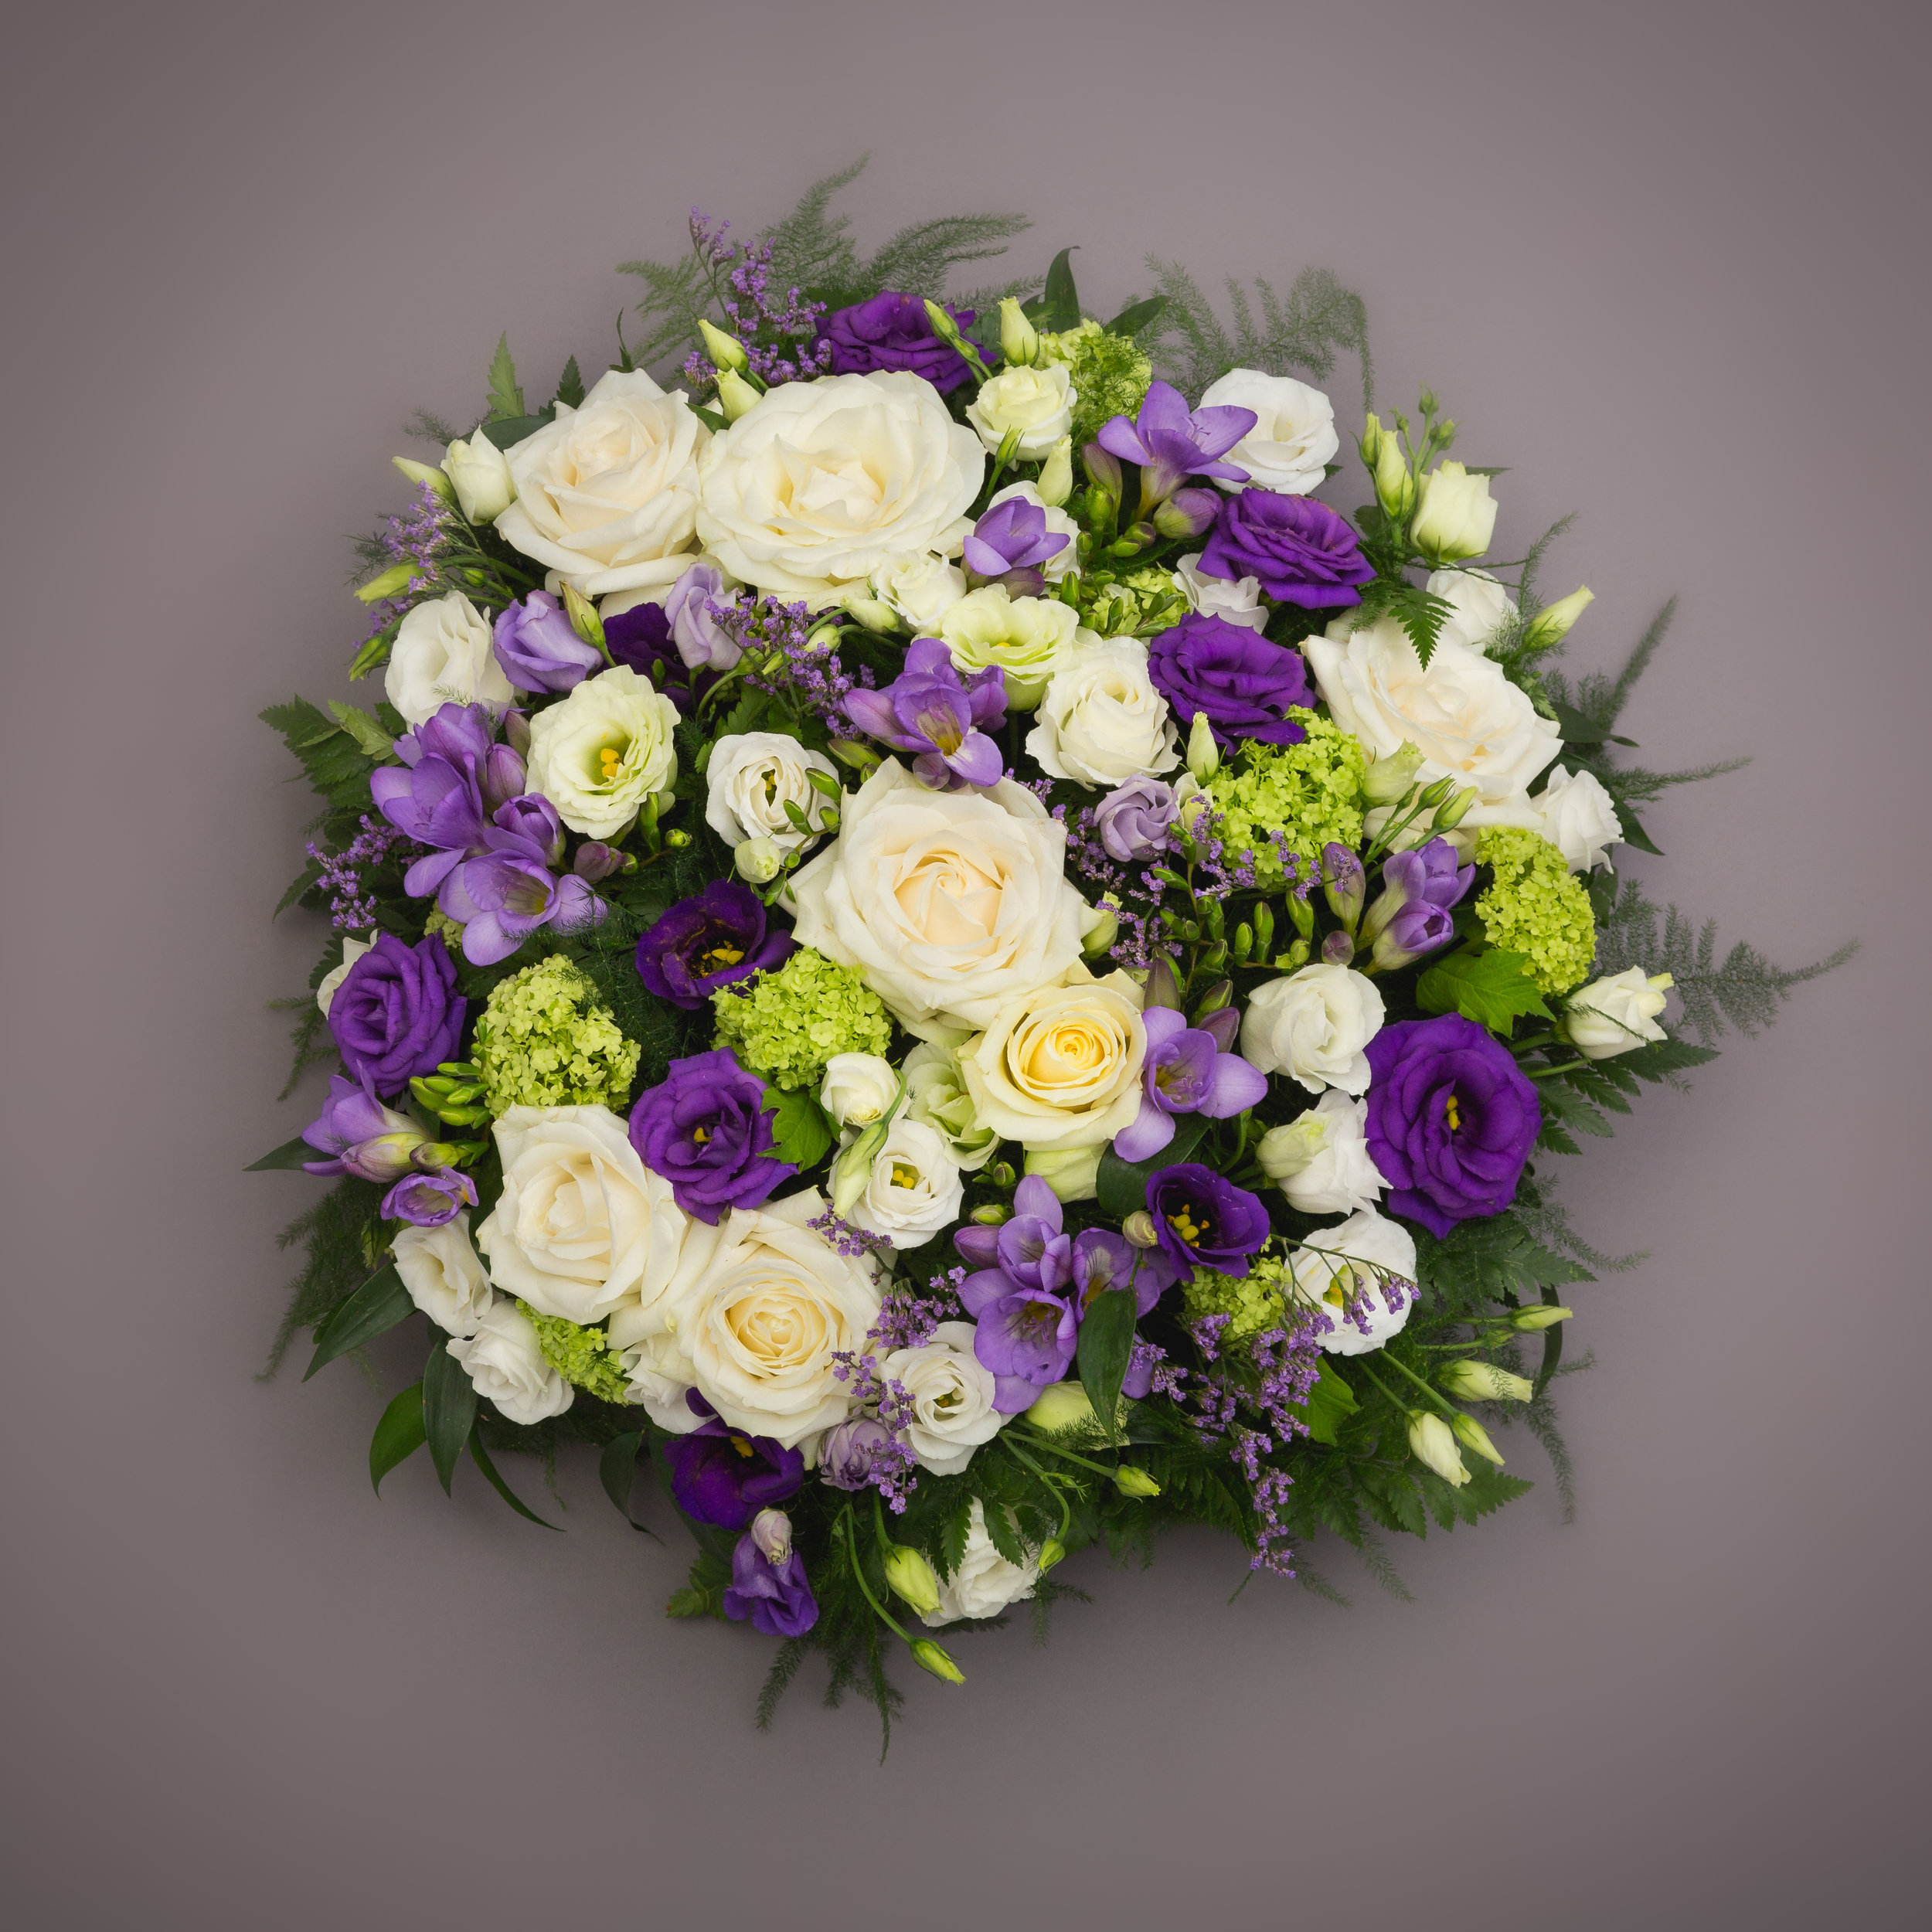 linden-tree-flowers-funeral-product-photography-sussex-48.jpg